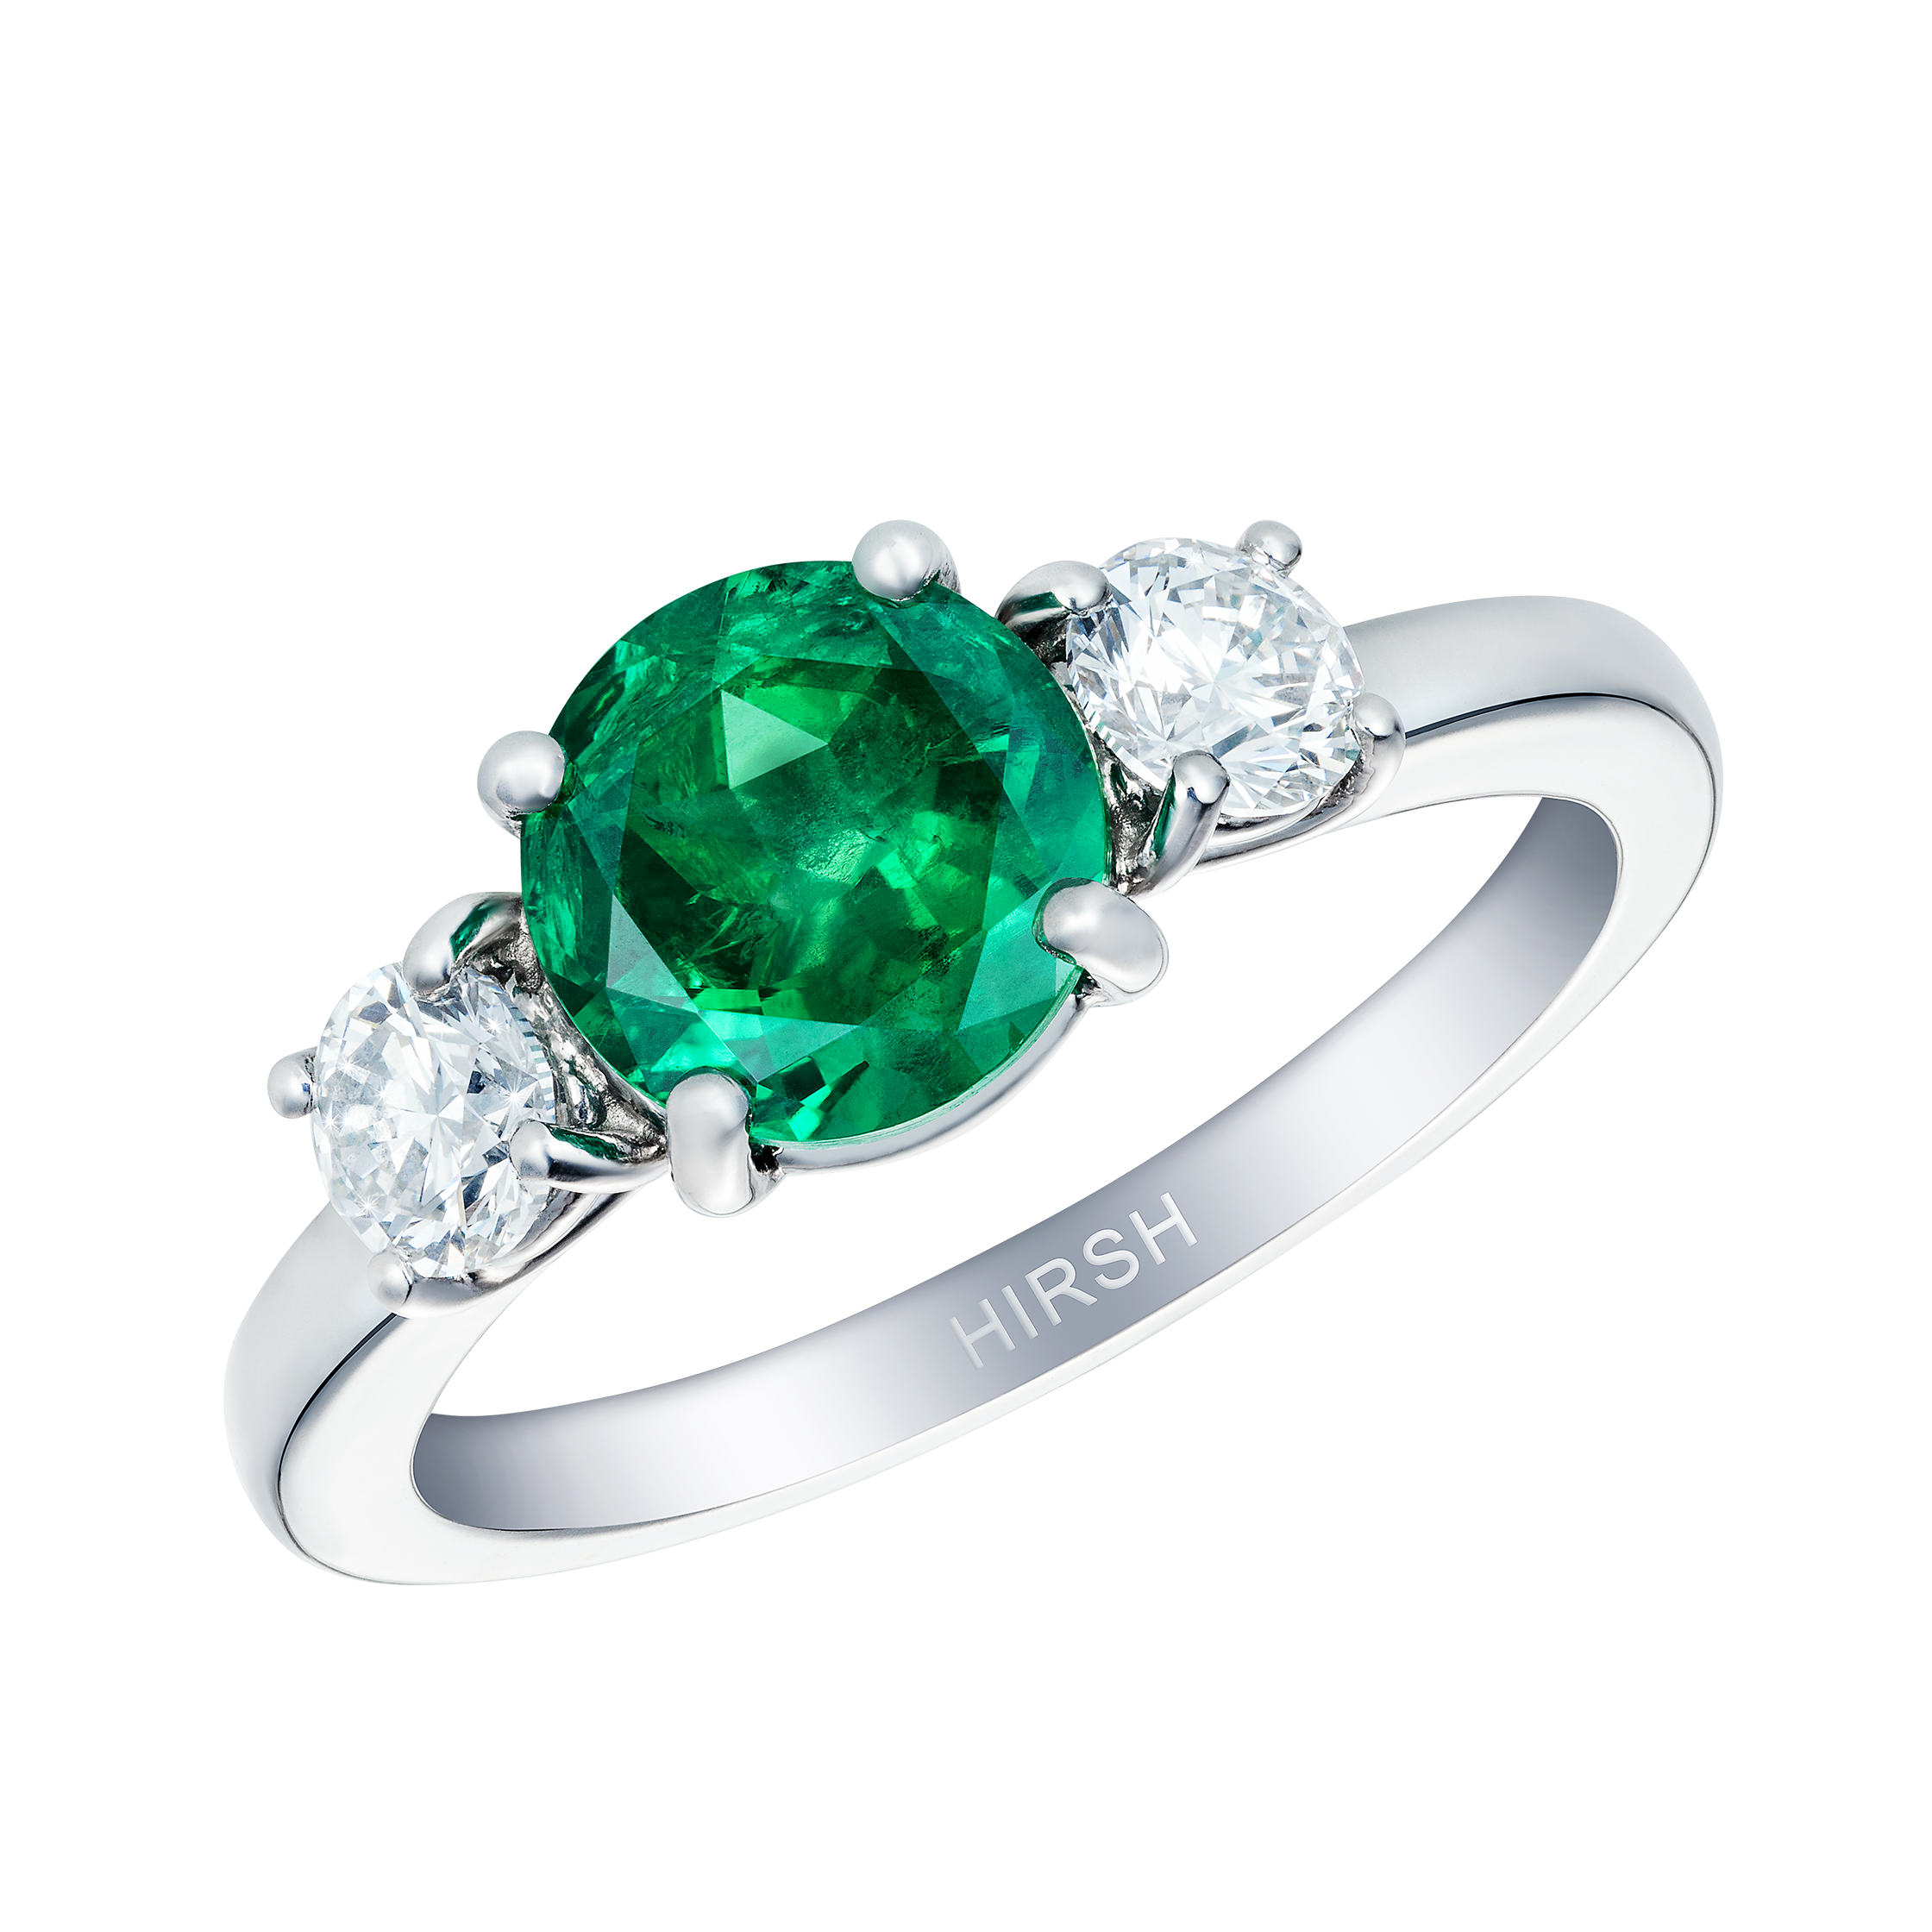 gem ring sterling com product qvc page bixby barbara rings precious gemstone vine